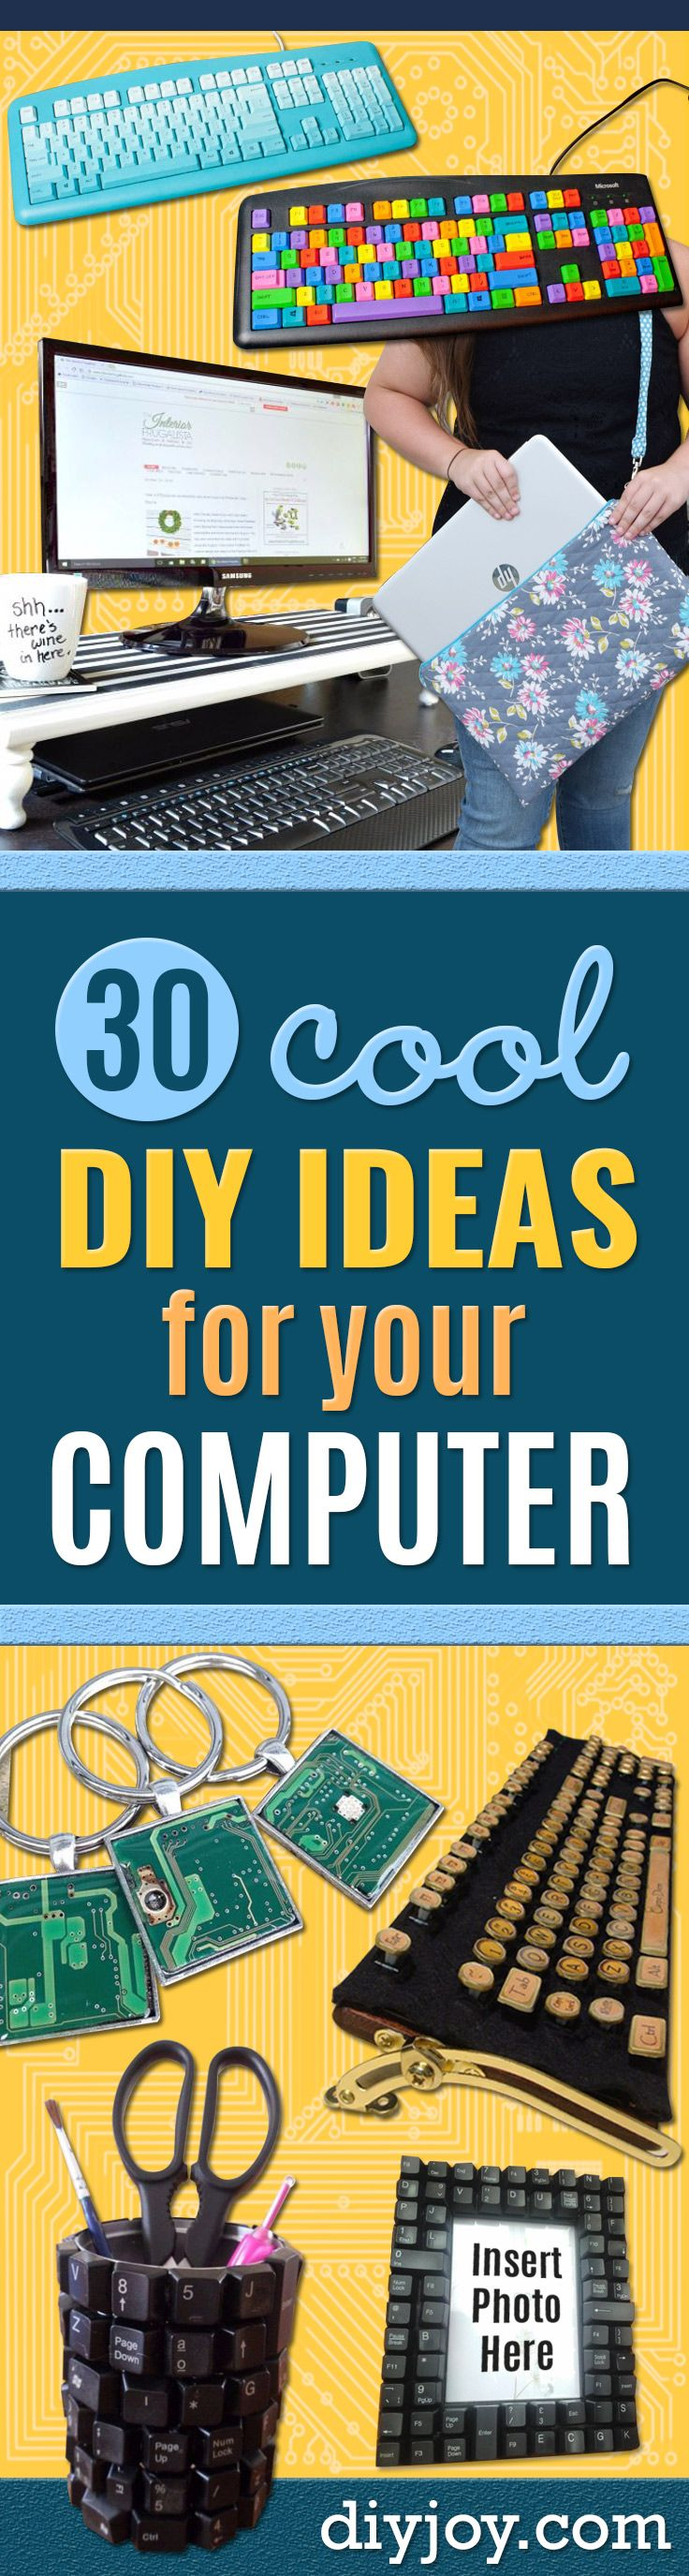 DIY Ideas for Your Computer - Cool Desk, Home Office, Bulletin Boards and Tech Projects for Kids, Awesome Tips and Tricks for Your Laptop and Desktop, Best Shortcuts and Neat Ways To Make Your Computer Even Better With Productivity Tips http://diyjoy.com/diy-ideas-computer